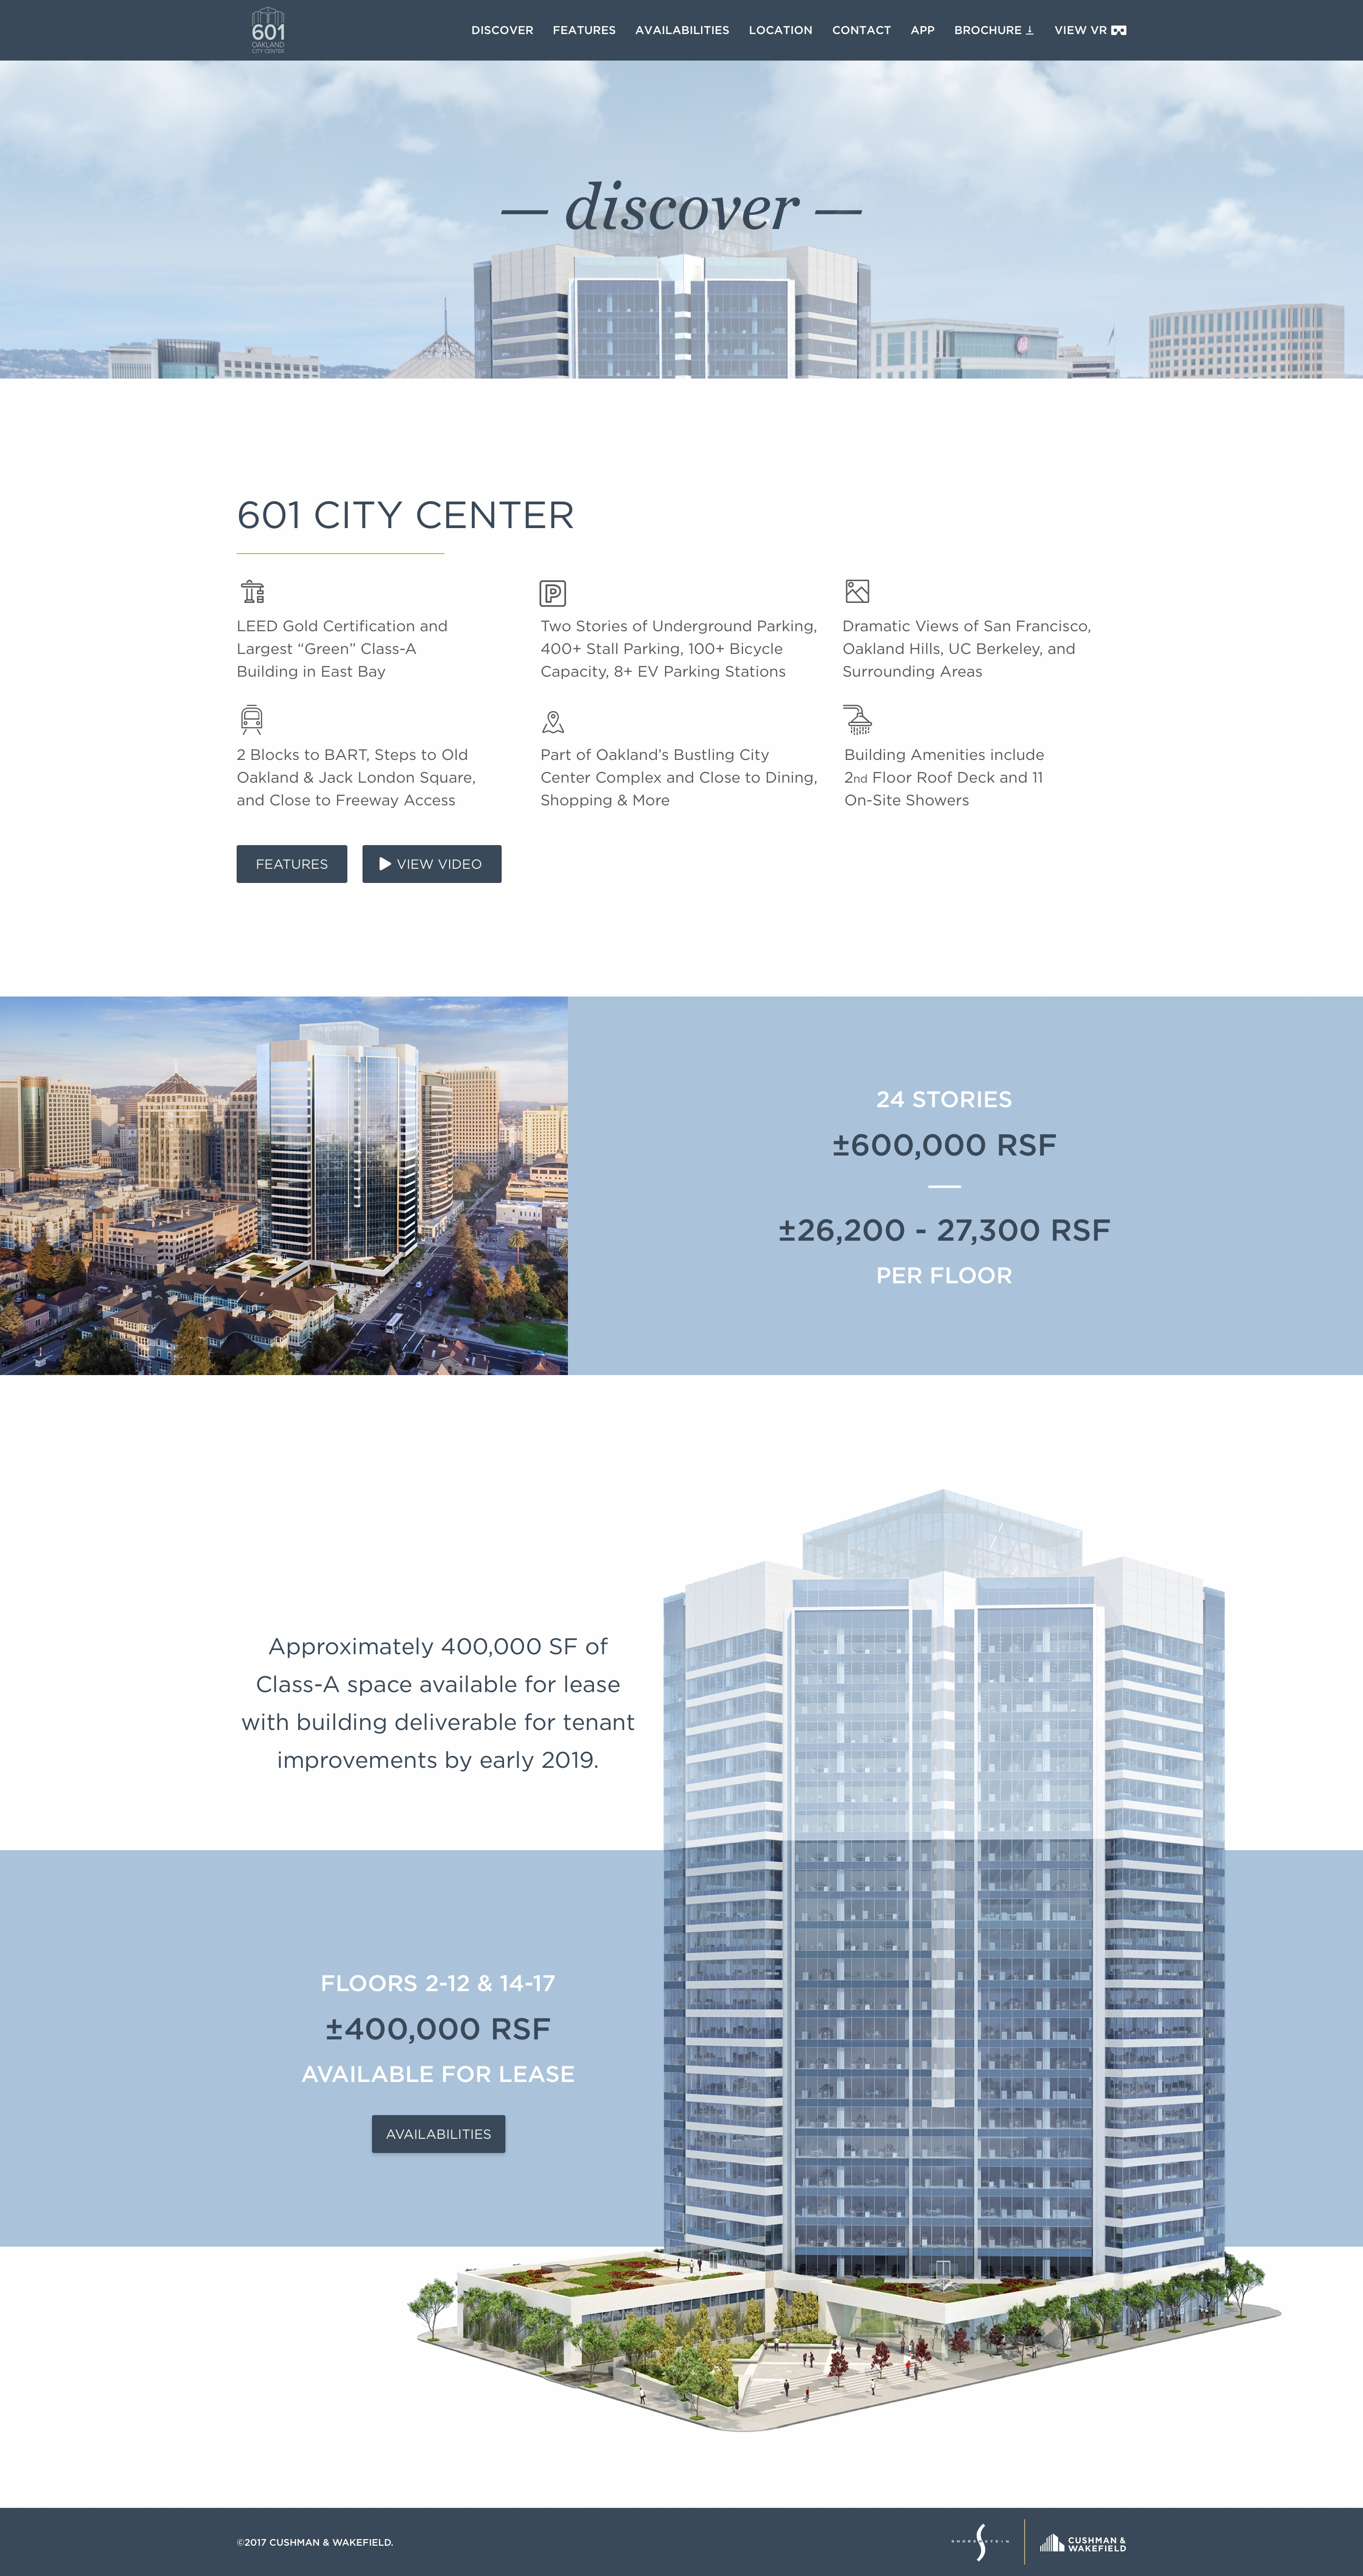 601citycenter discoverpage desktop